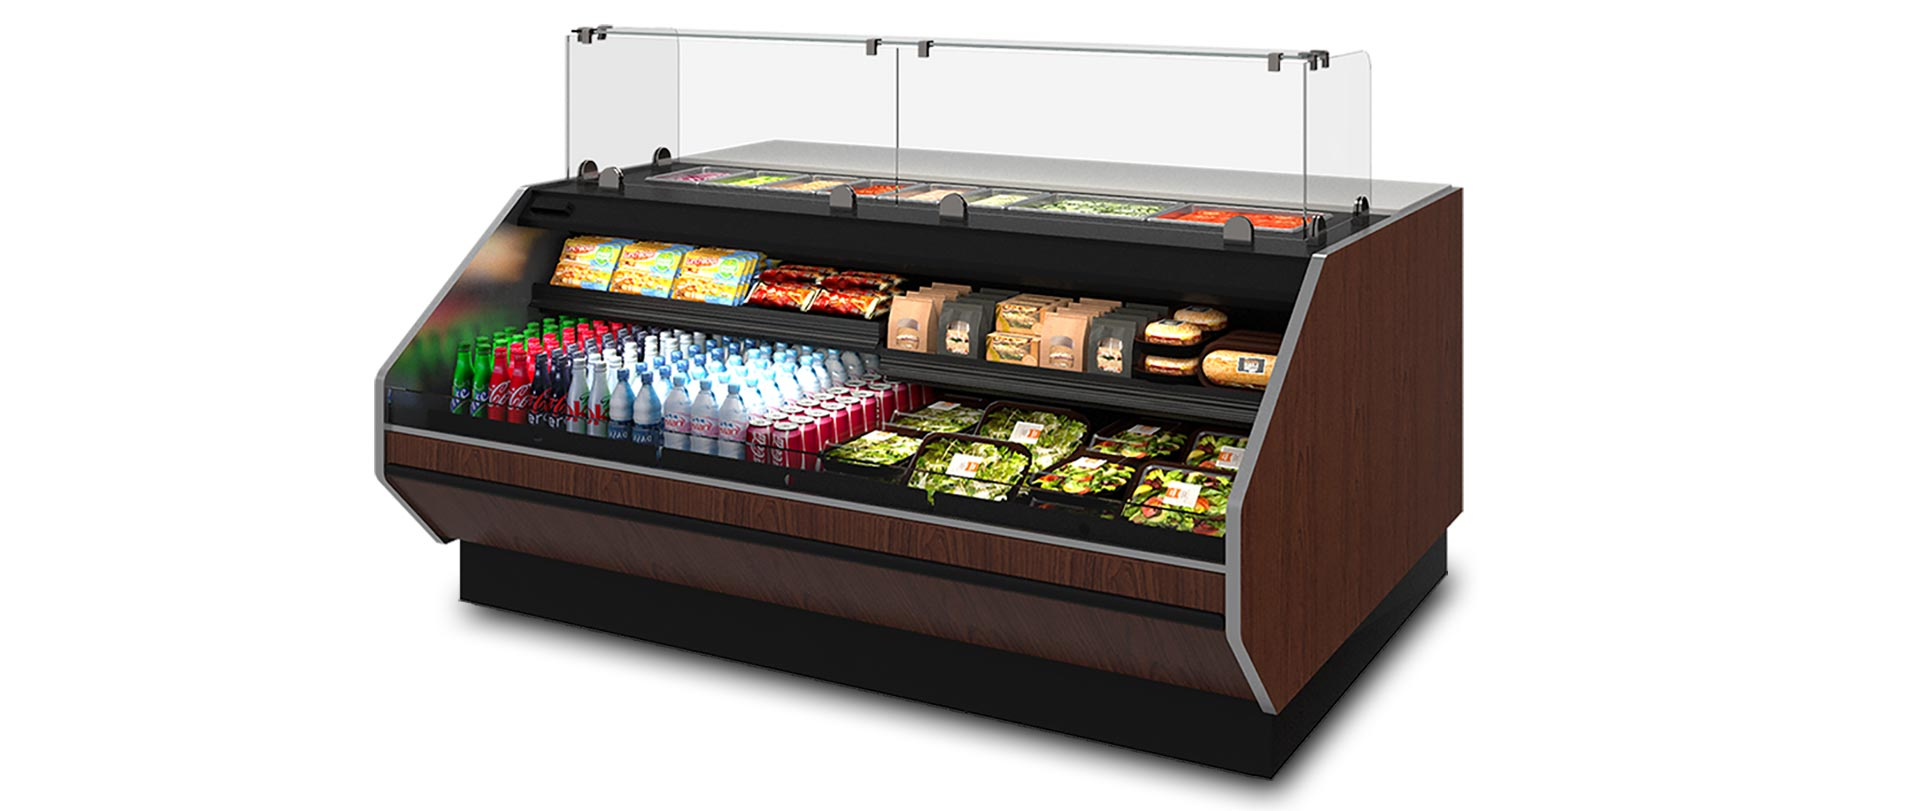 PTSFC Refrigerated Deli Display Case with Prep Counter  HillPhoenix